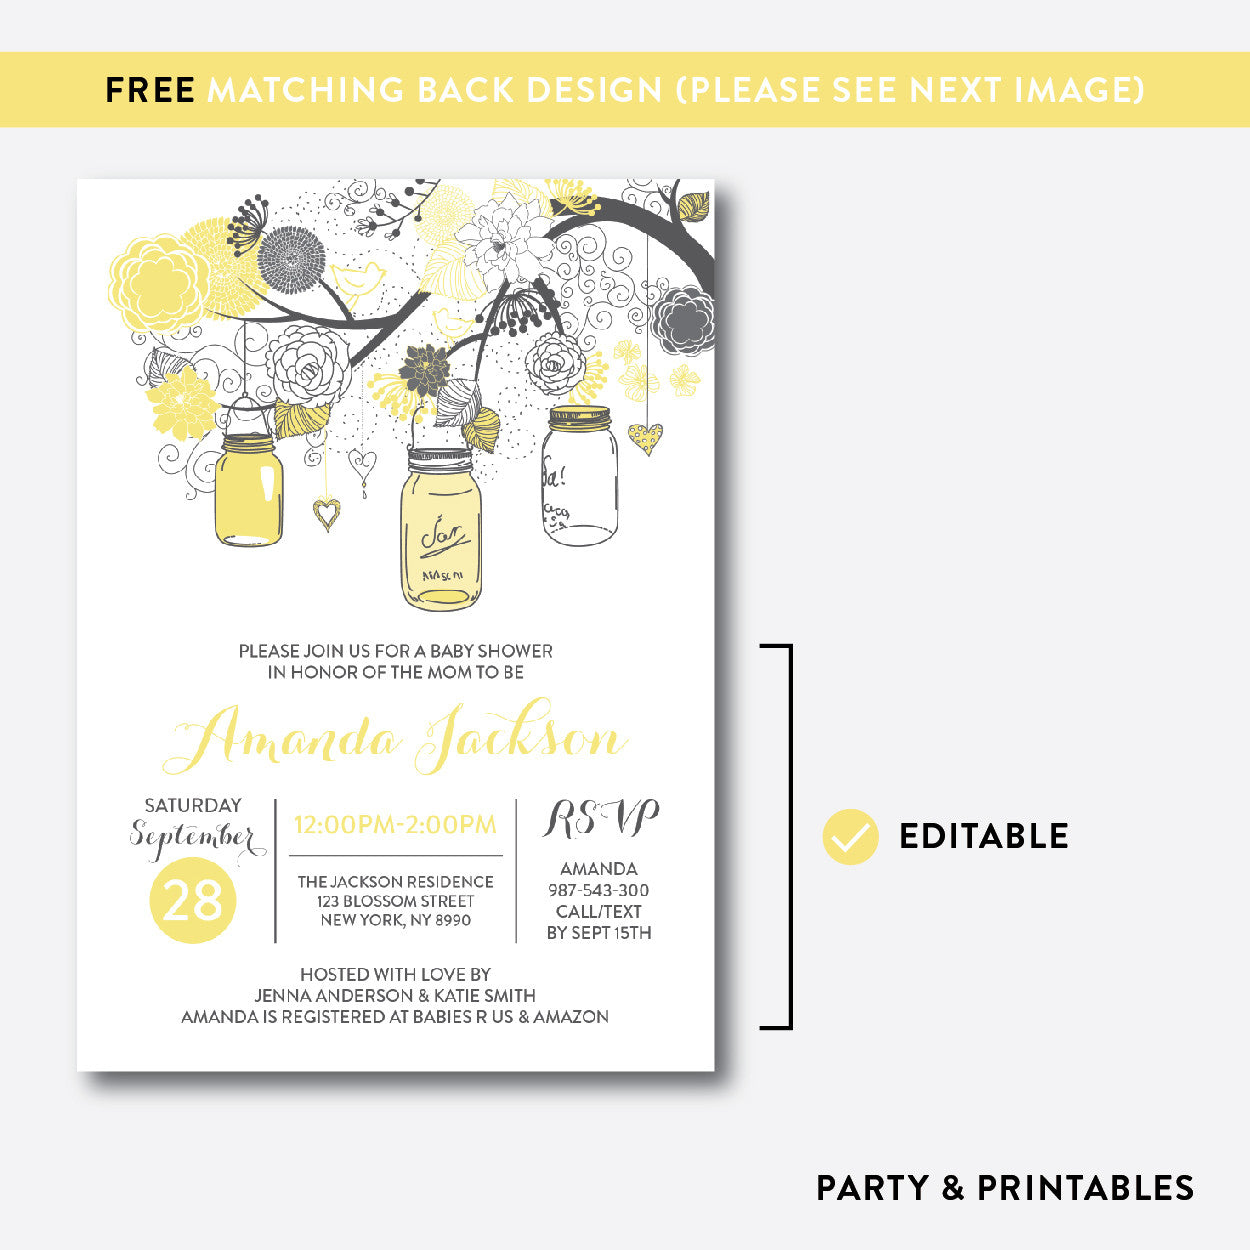 Floral Mason Jar Baby Shower Invitation / Editable / Instant Download (SBS.90), invitation - Party and Printables